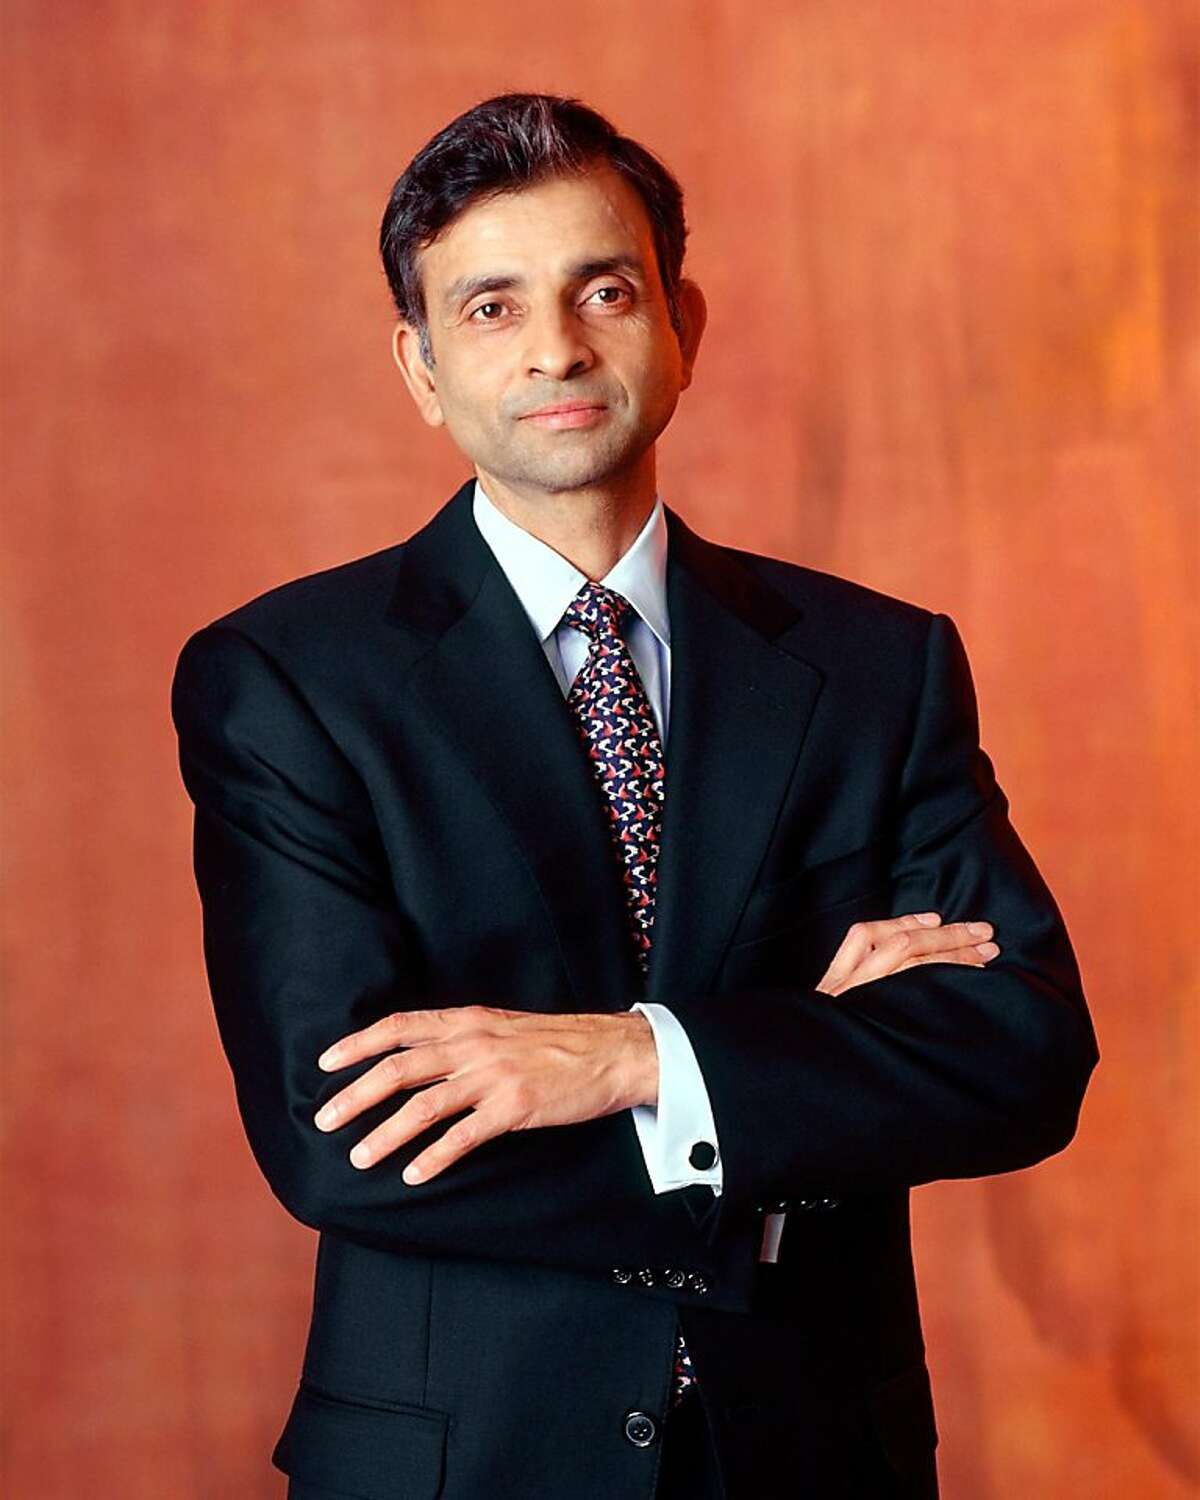 Tibco software CEO Vivek Ranadivé.